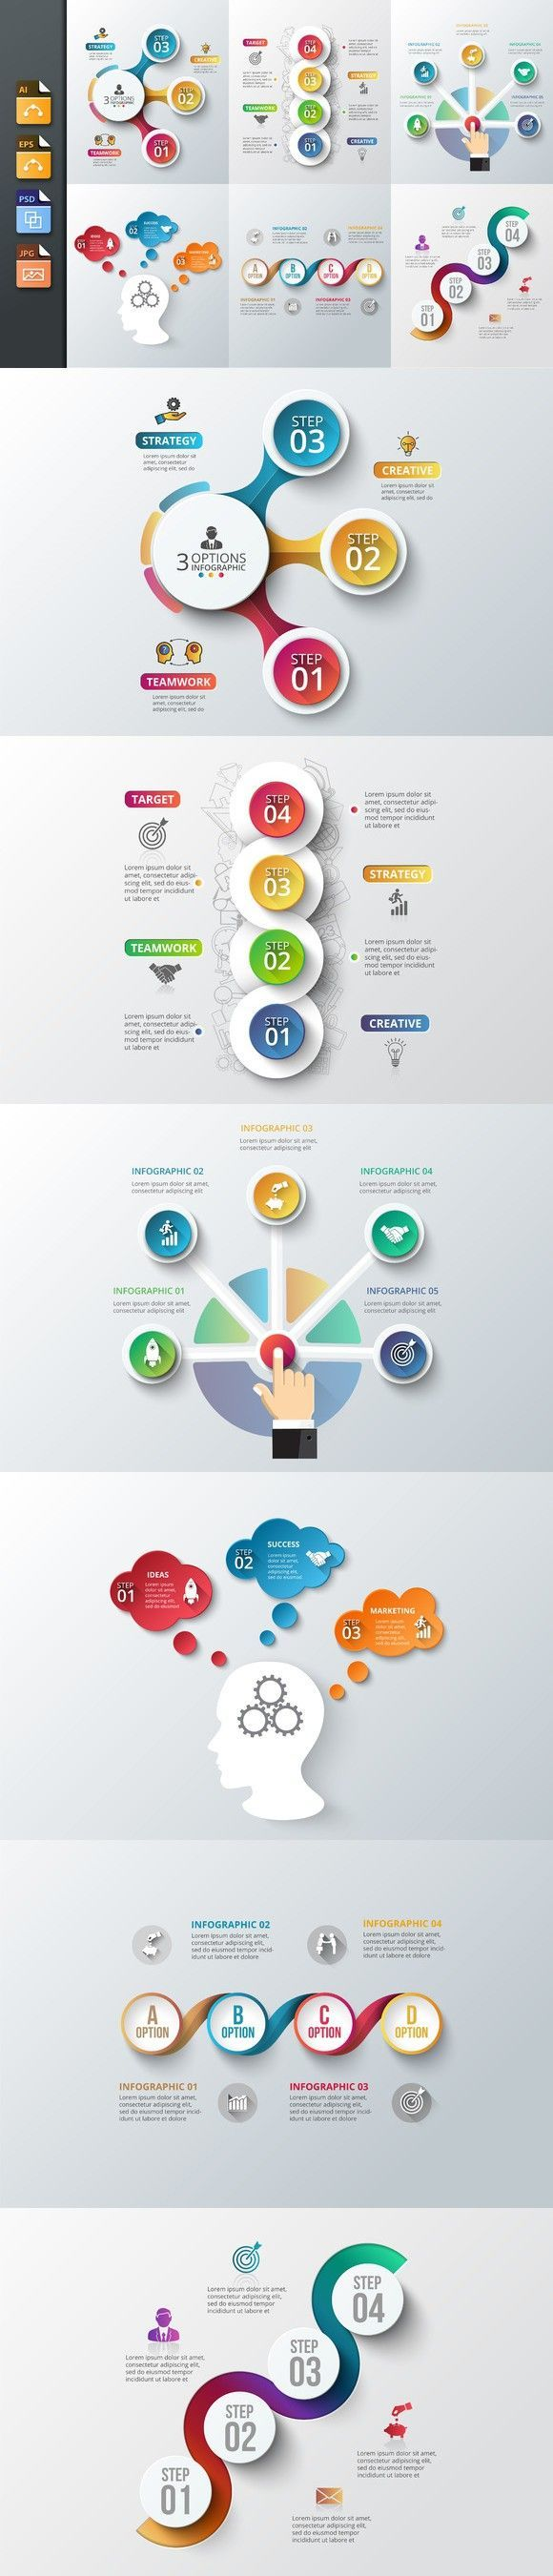 Business infographic : Diagrams for business infographic v6. Human Icons. $5.00